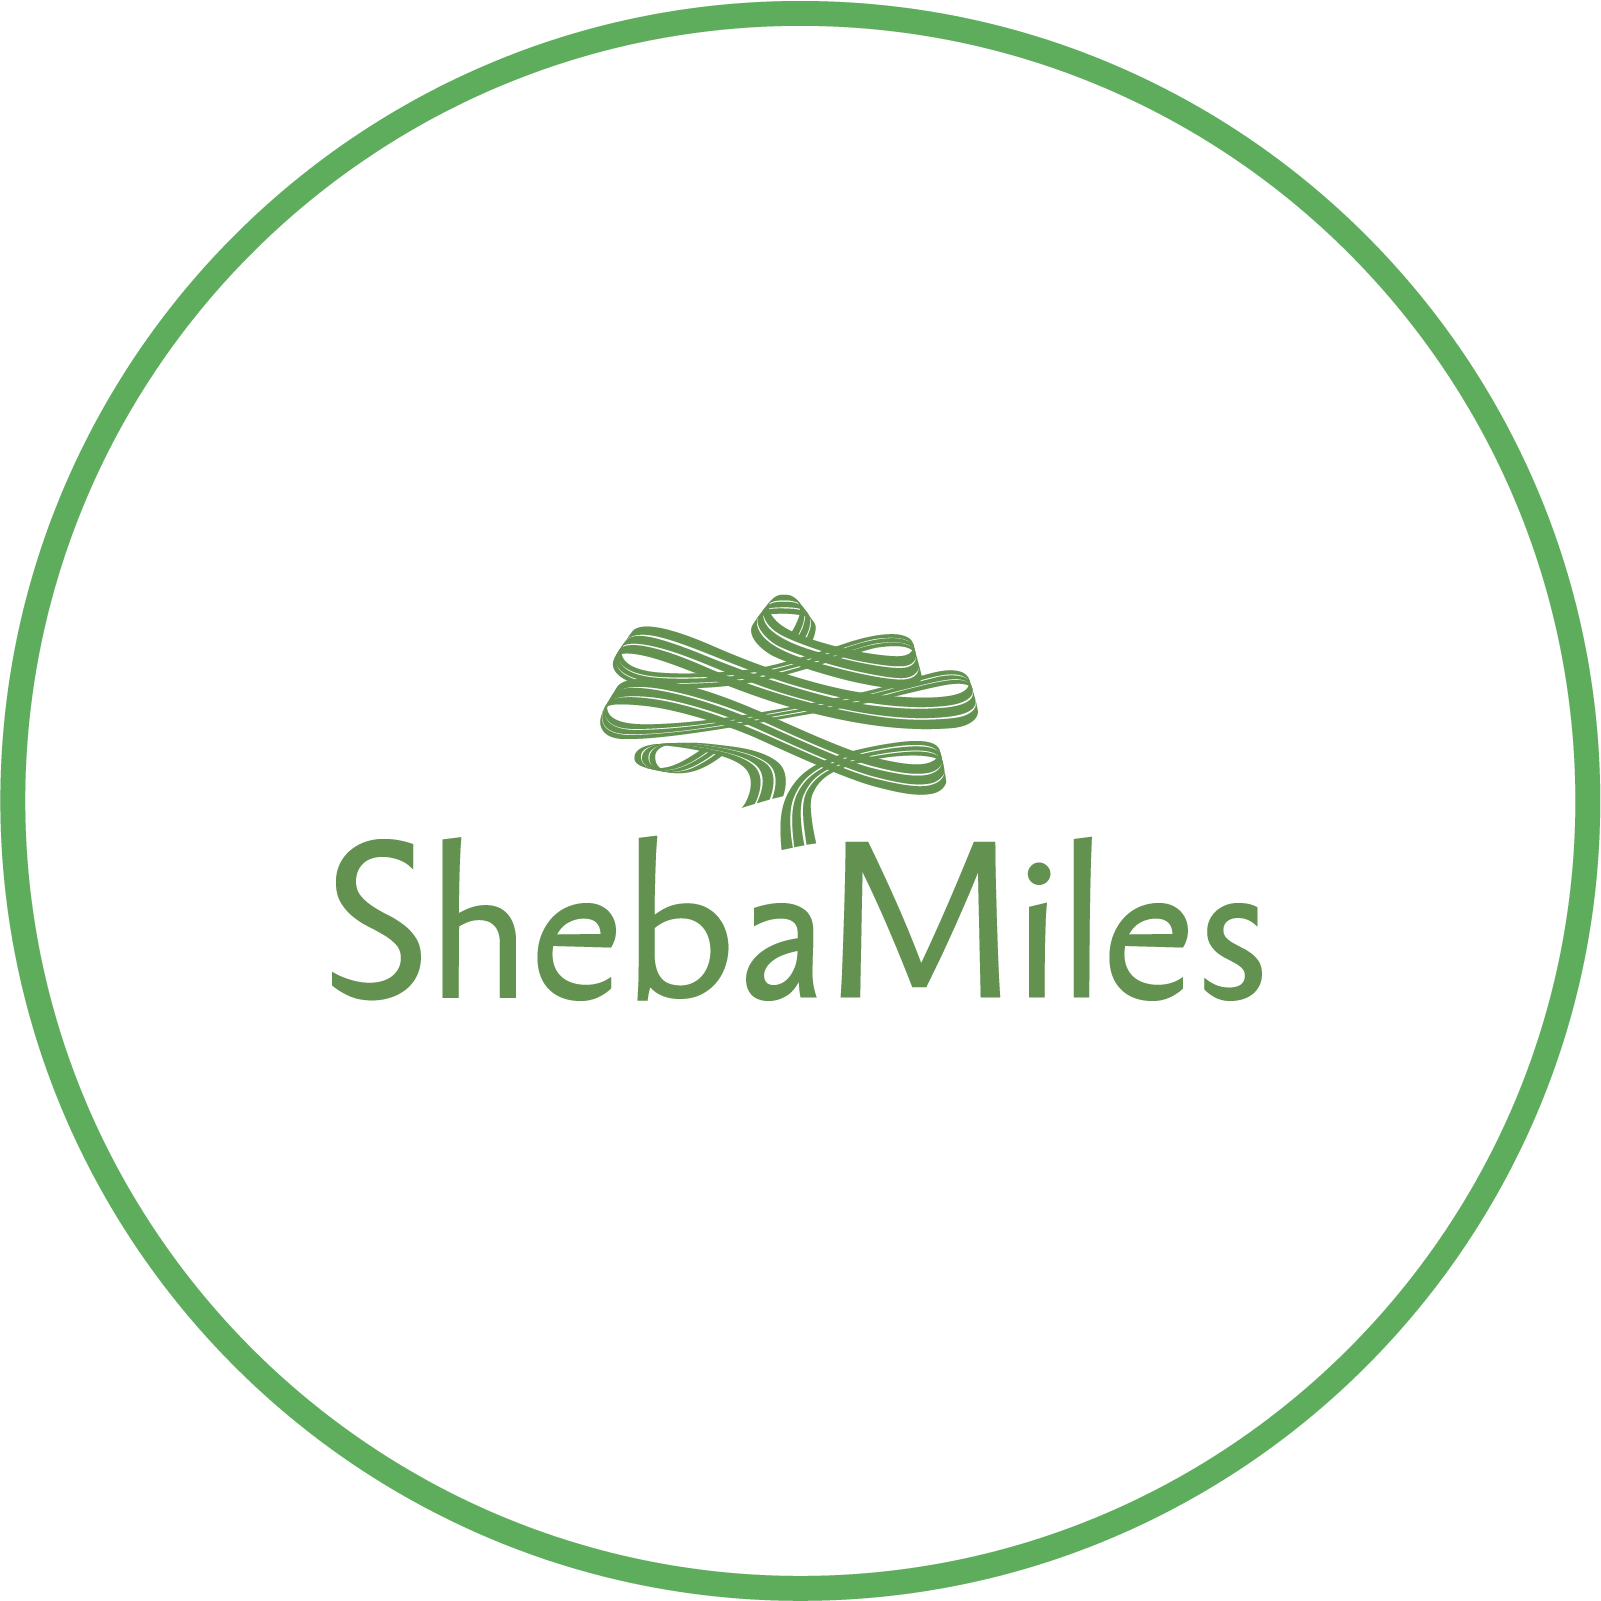 Shebamiles deals and offers